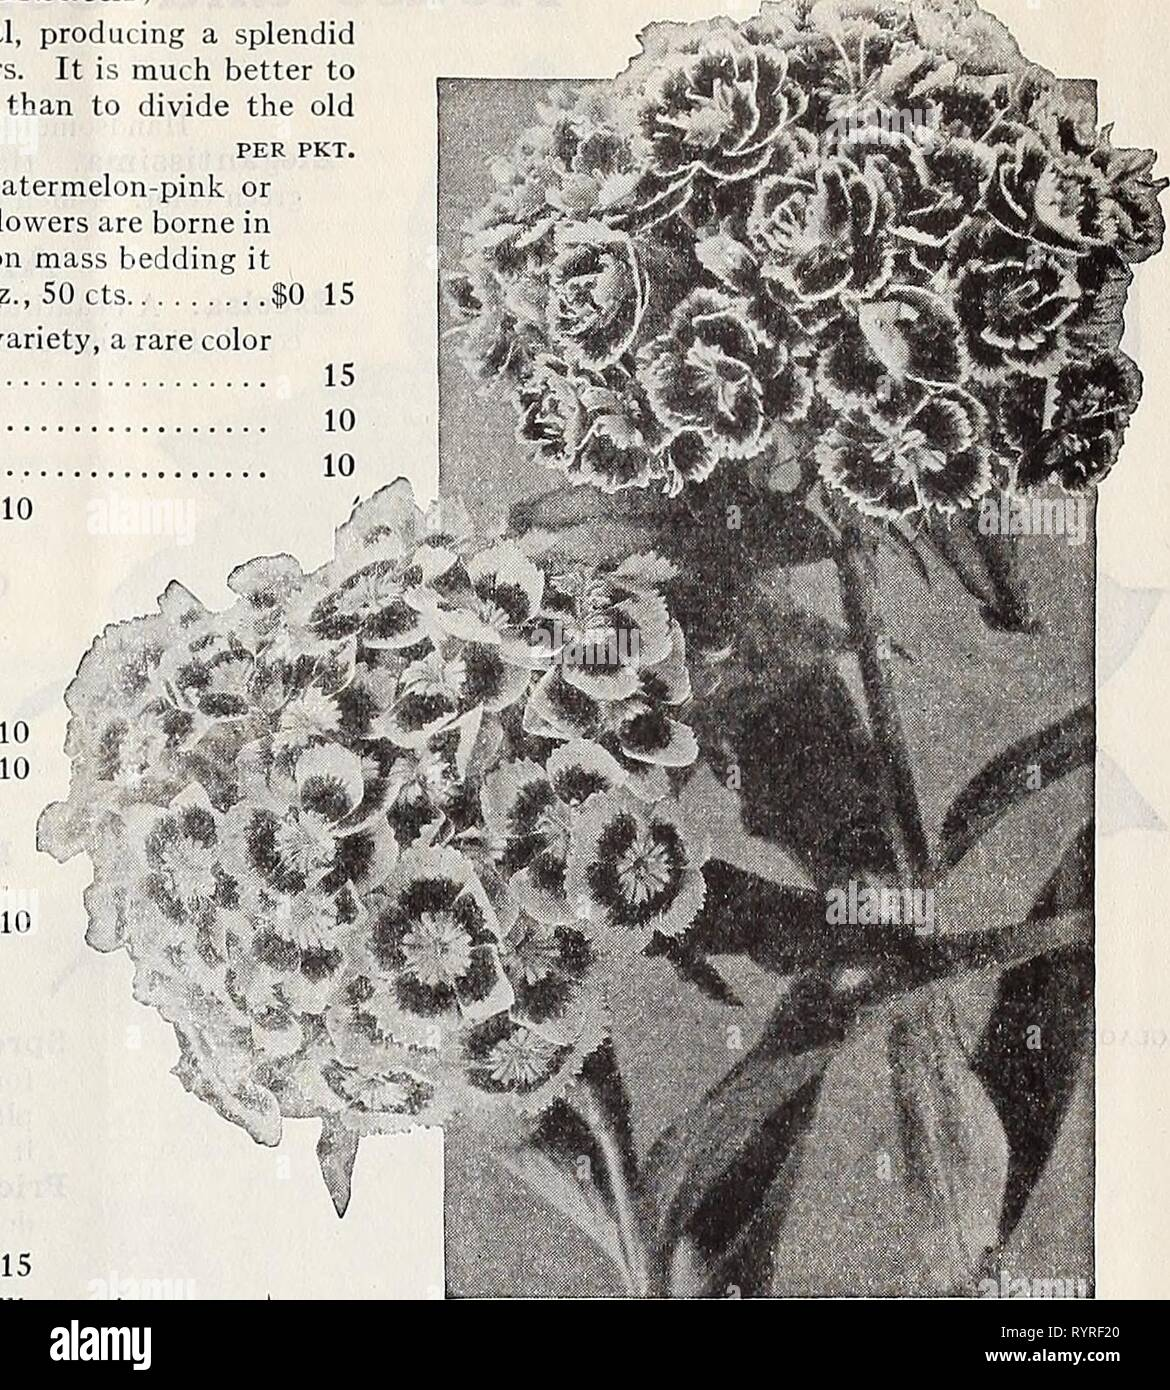 Dreer's midsummer list 1932 (1932) Dreer's midsummer list 1932 . dreersmidsummerl1932henr Year: 1932  DREER'S FLOWER SEEDS FOR SUMMER SOWING 23 Sweet William (Dianthus Barbatus) A well-known, attractive, free-flowering hardy perennial, producing a splendid effect in beds and borders with their rich and varied flowers. It is much better to raise new vigorous young plants from seed every season than to divide the old plants; 18 inches. PER PKt. 4282 Newport Pink. In color it is what florists call watermelon-pink or salmony-rose. Strikingly brilliant and beautiful; the flowers are borne in massiv - Stock Image